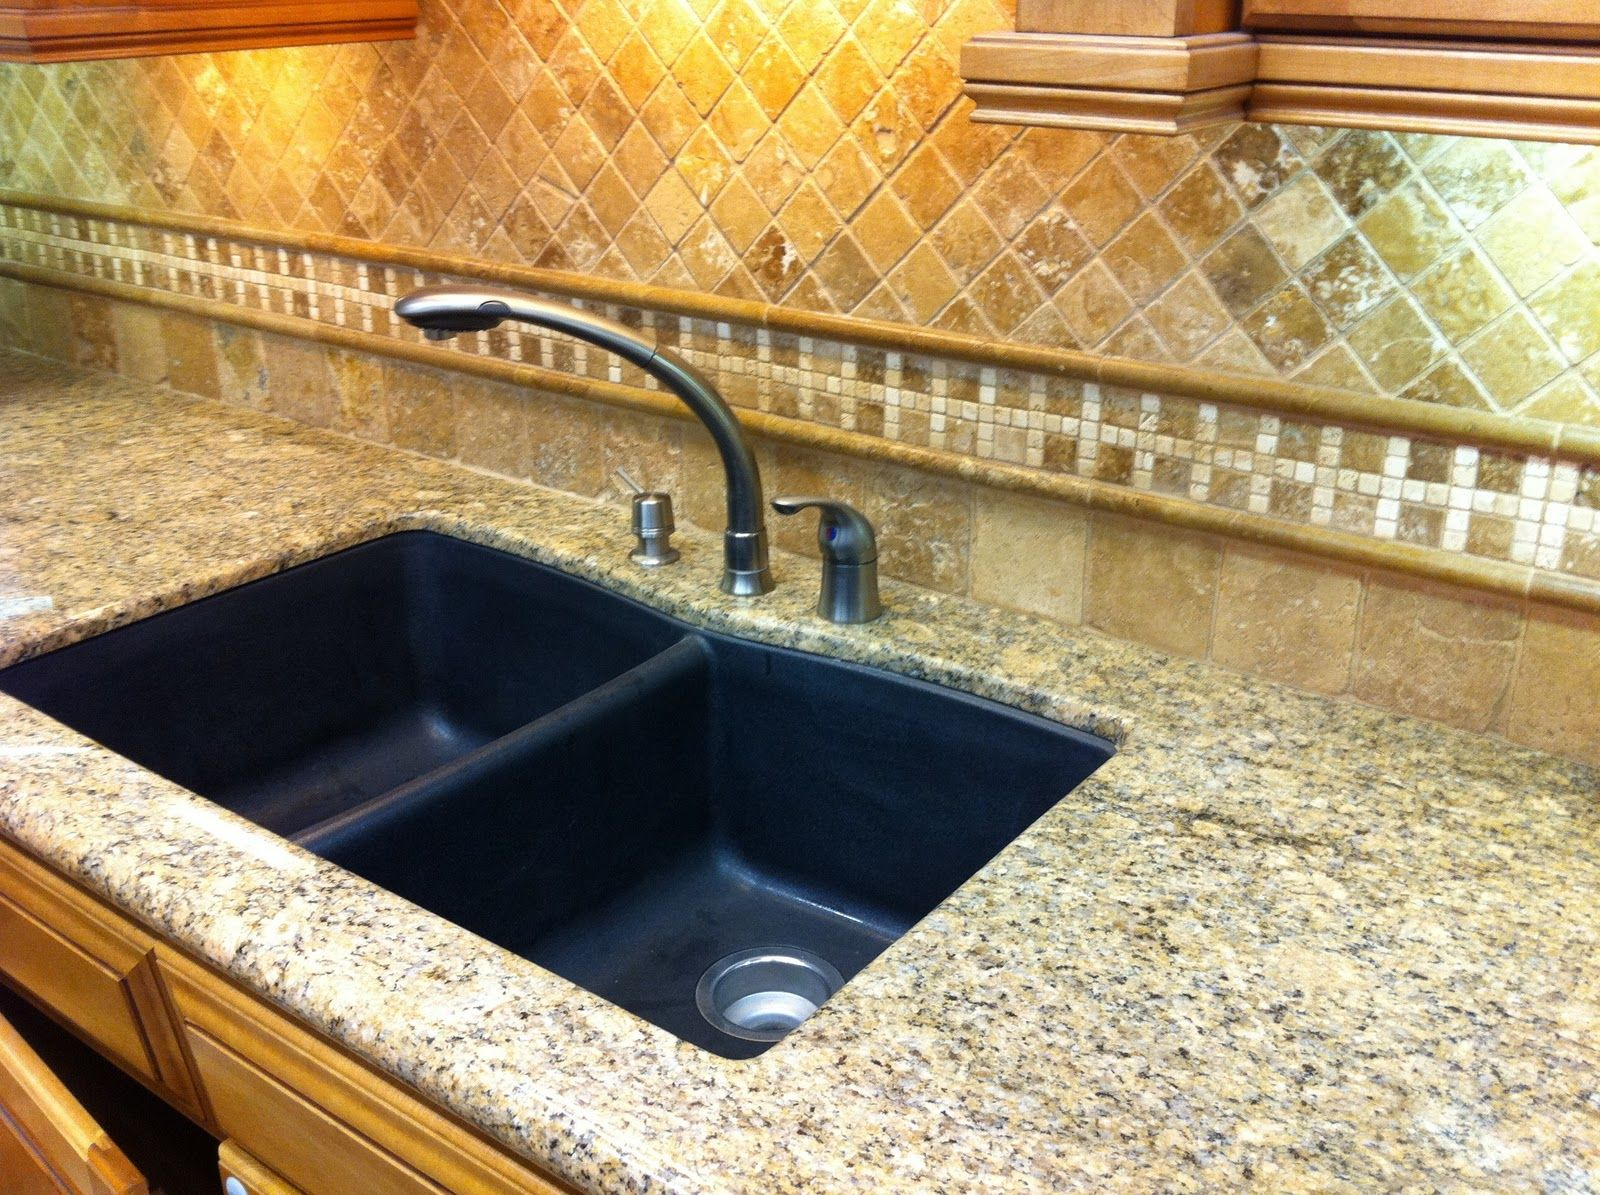 Backsplash ideas for granite countertops gorgeous light brown backsplash ideas for granite countertops gorgeous light brown granite tile countertop design idea with black dailygadgetfo Image collections